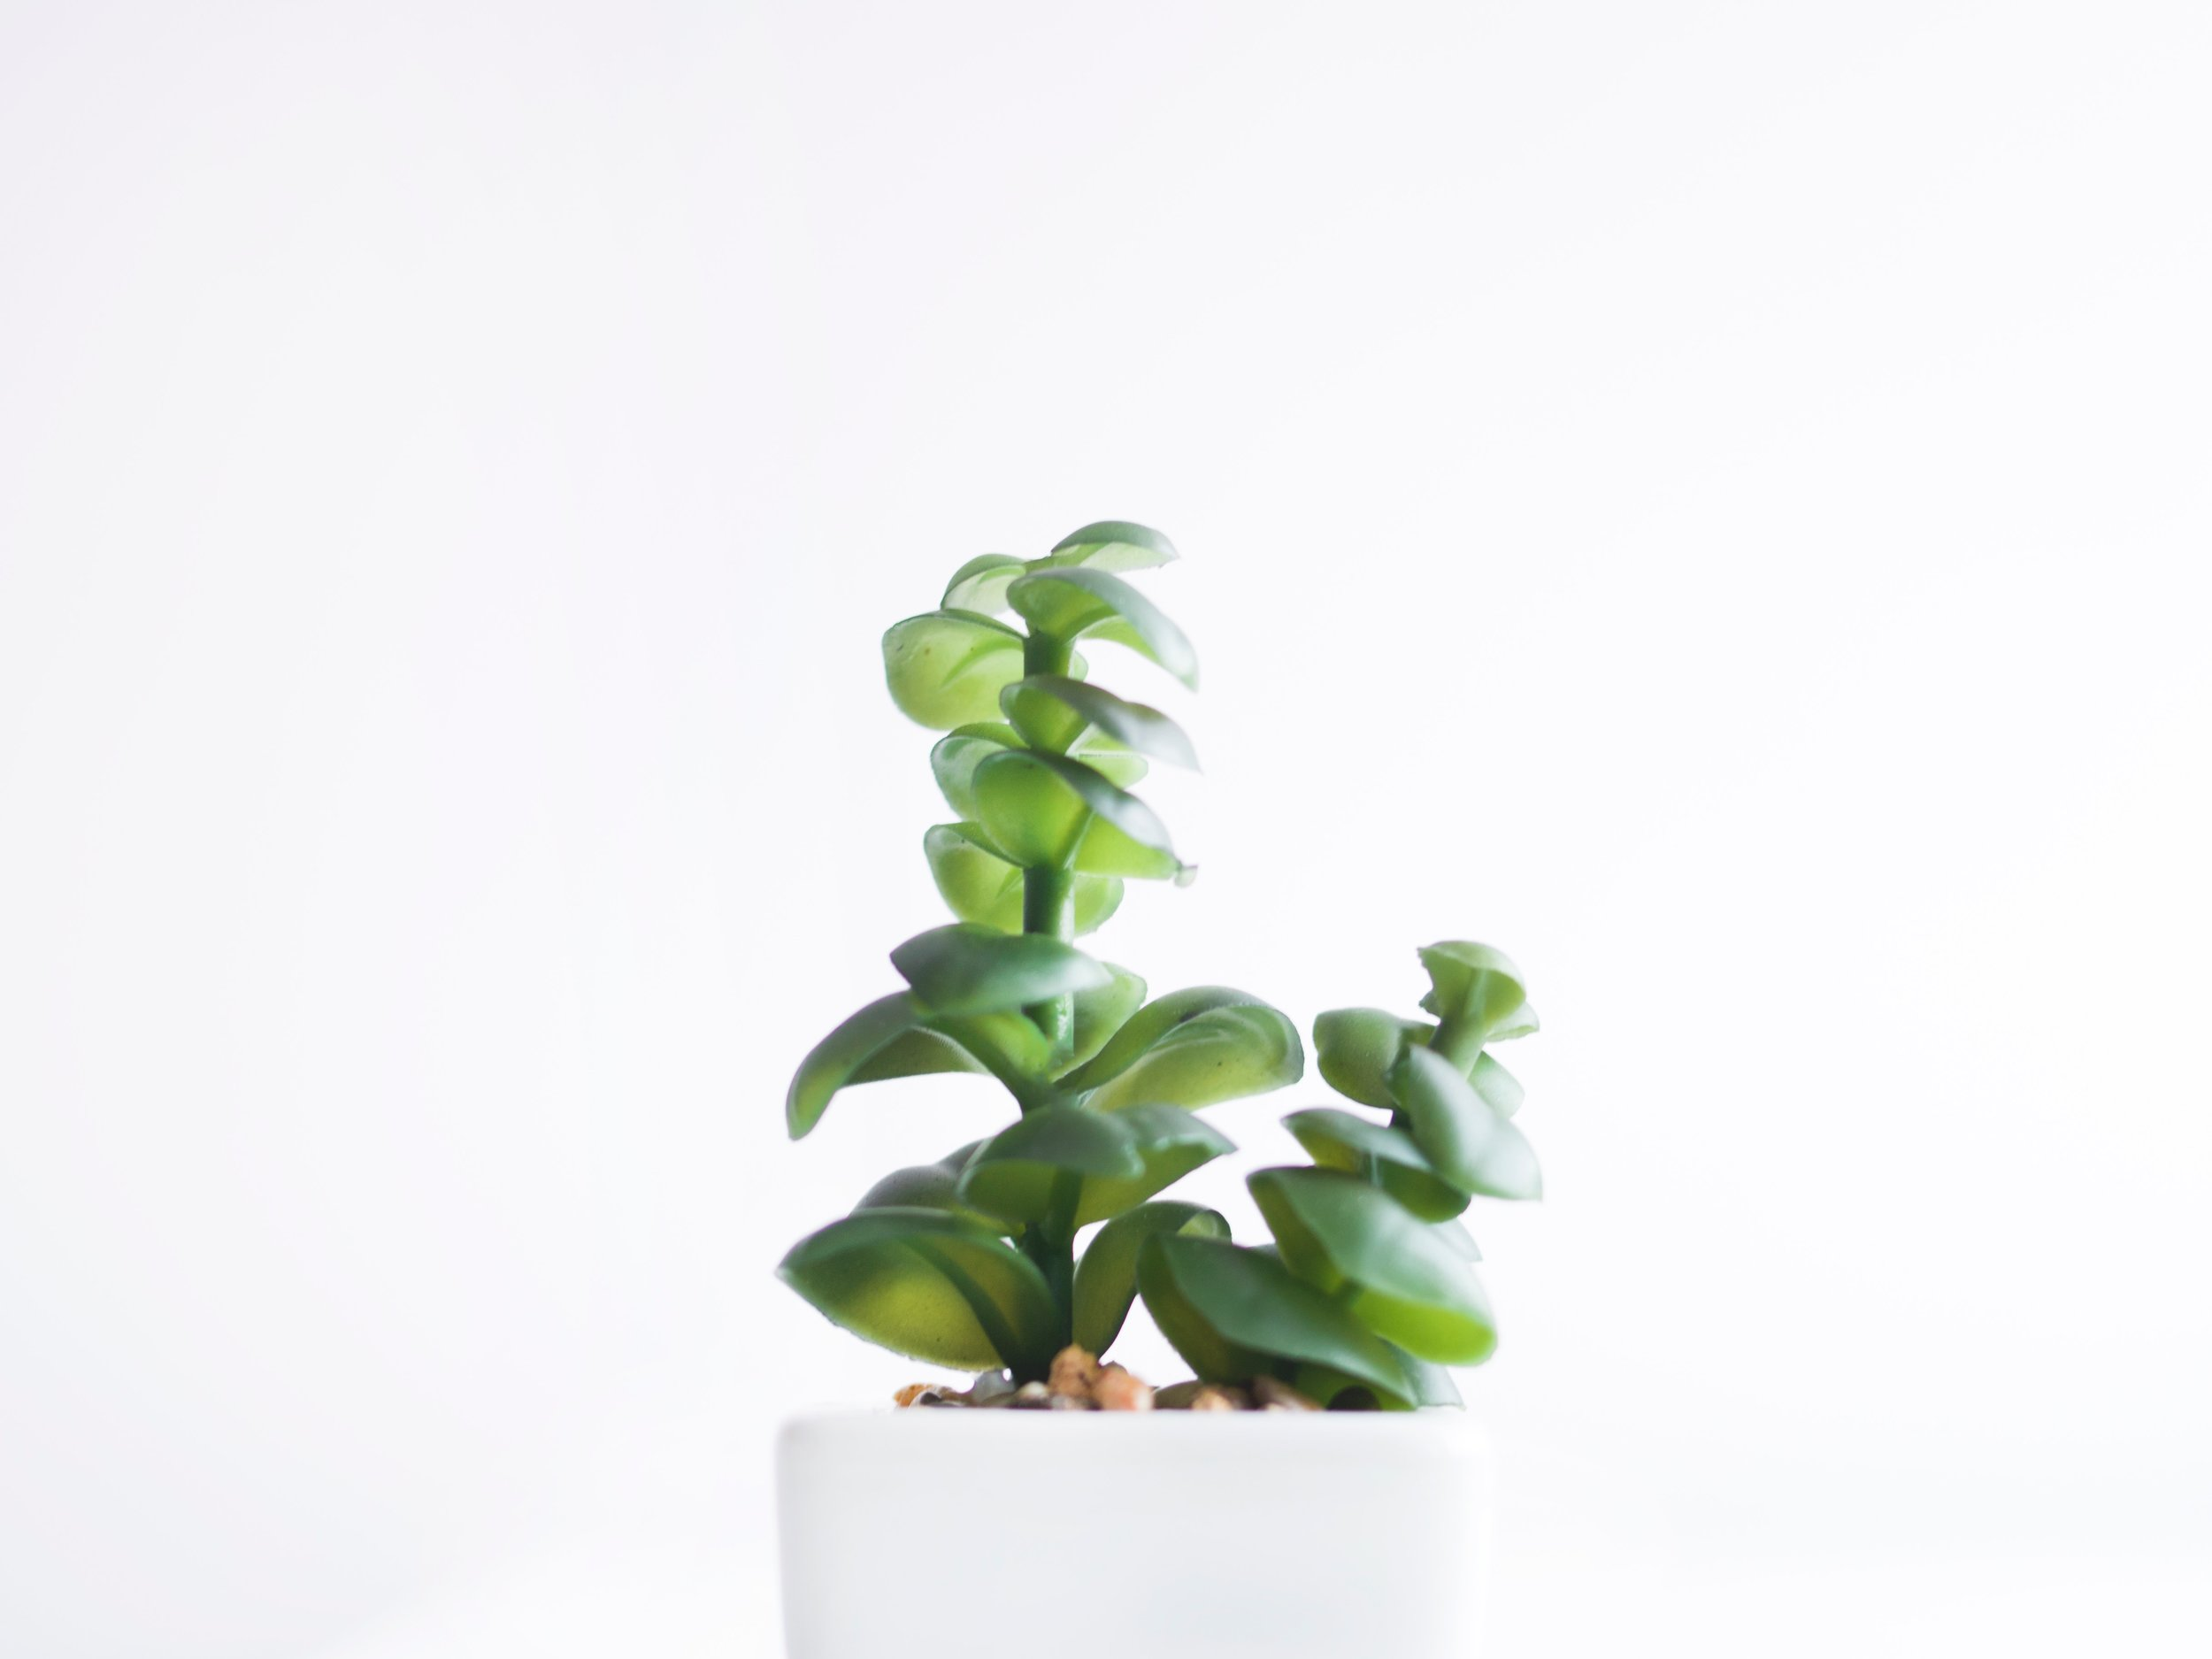 The Succulent Potted Plant - You will experience the wonderful bond of office companionship if you learn to speak to them just right.